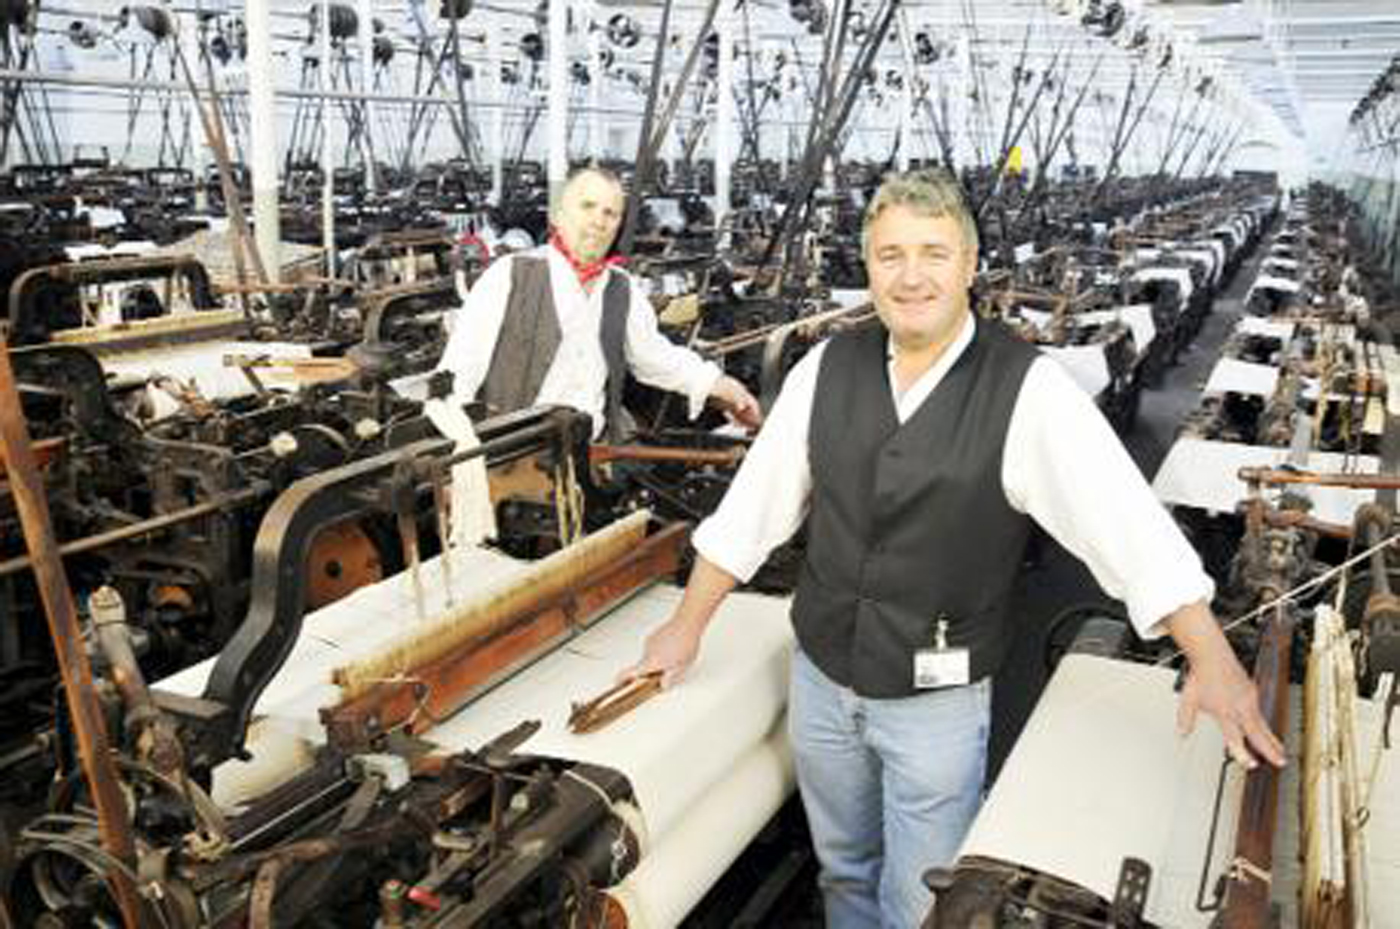 Another great East Lancs museum: Queen Street Mill Textile Museum with Weaver Colin Stevens, left, and Tackler Graeme Myers